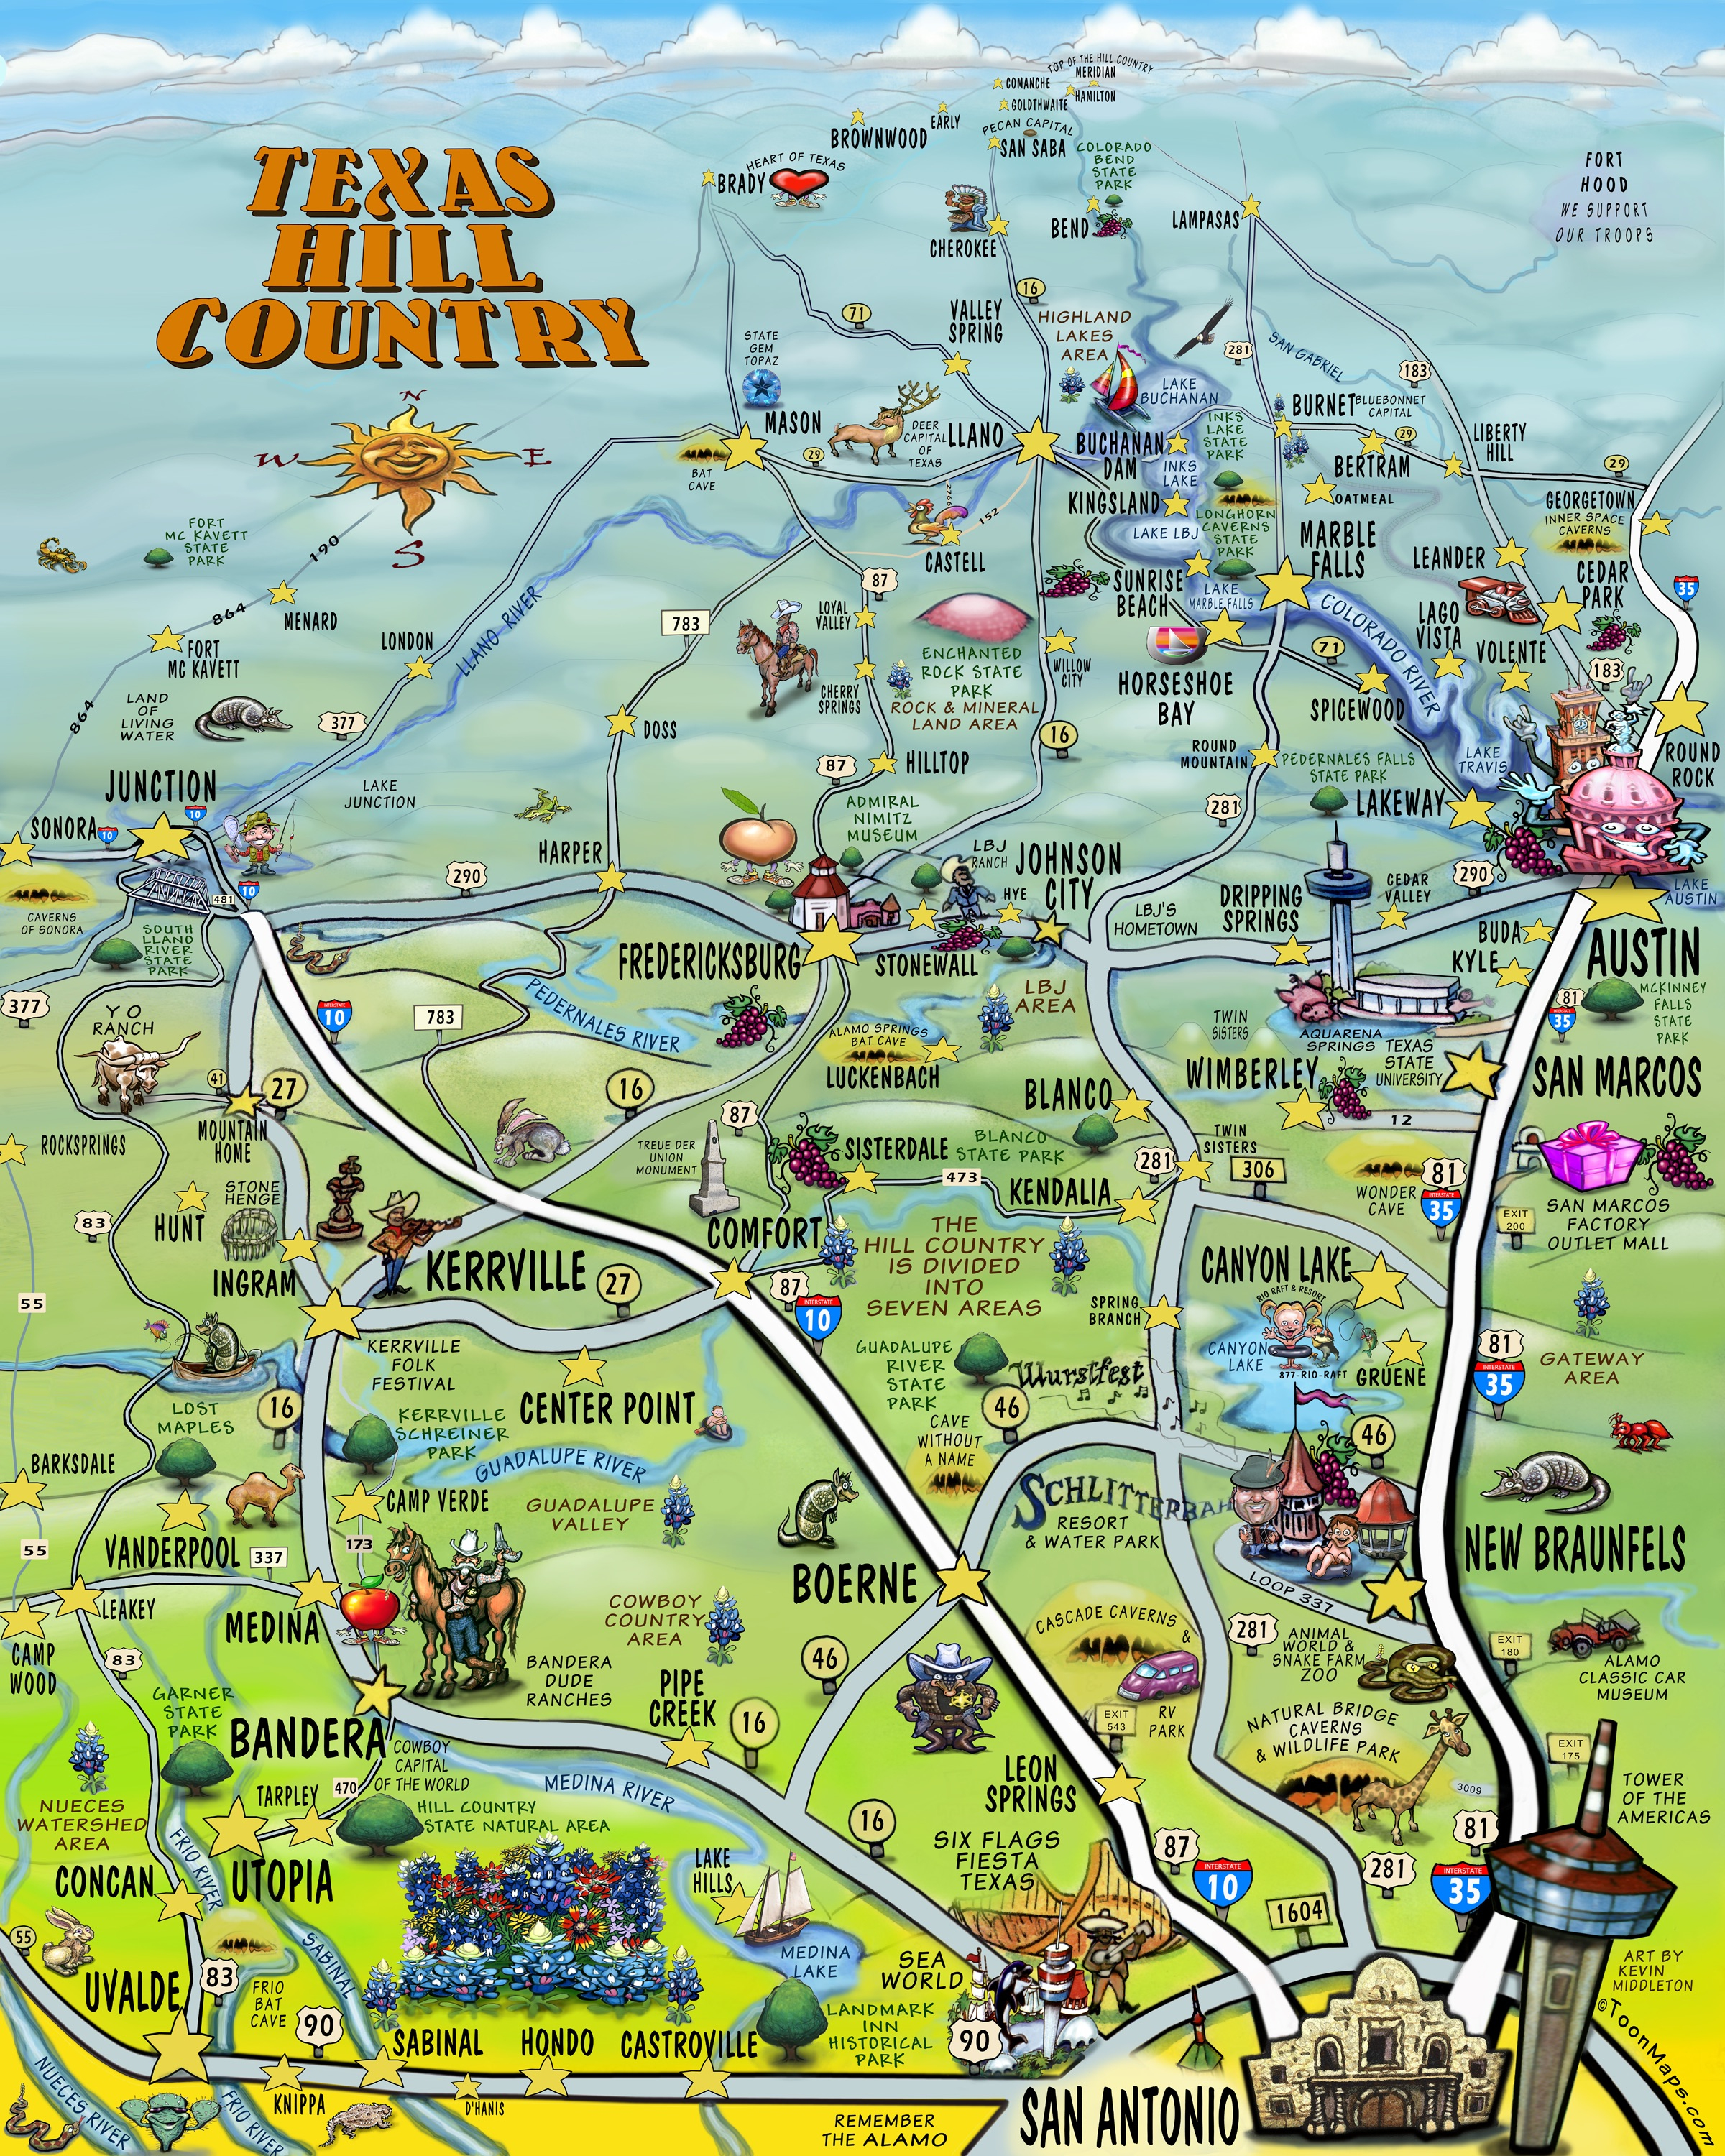 Texas Hill Country Invites San Antonio To Explore And Discover | The - Texas Hill Country Wineries Map